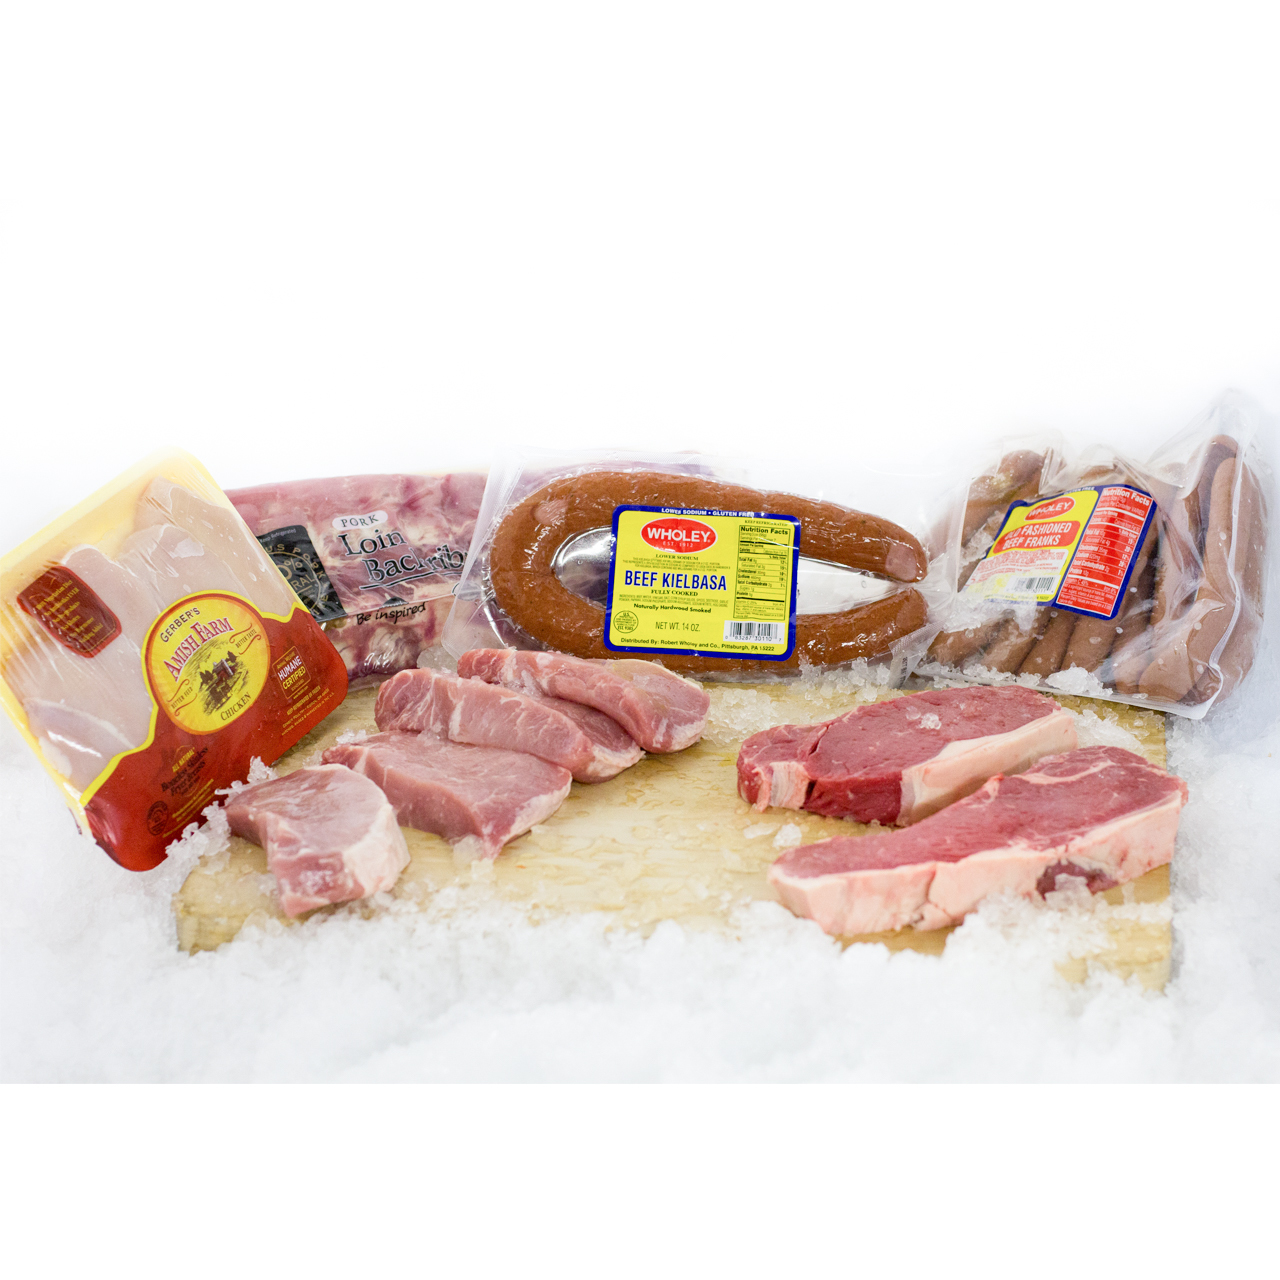 An assortment of both packaged and opened fresh meat products